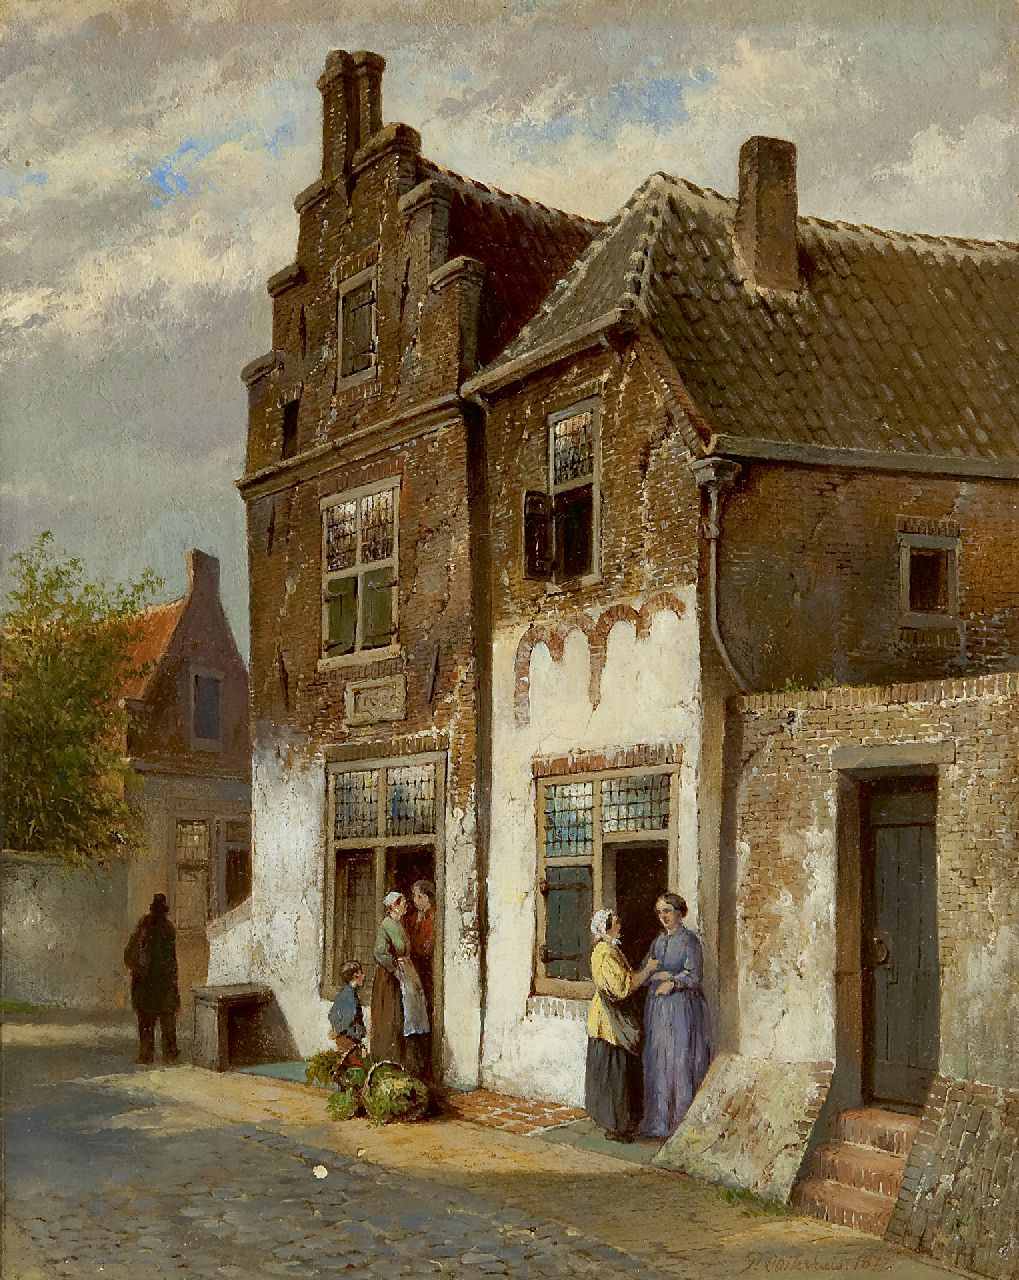 Pieter Oosterhuis | Figures in a street, oil on panel, 25.0 x 19.8 cm, signed l.r. and dated 1877